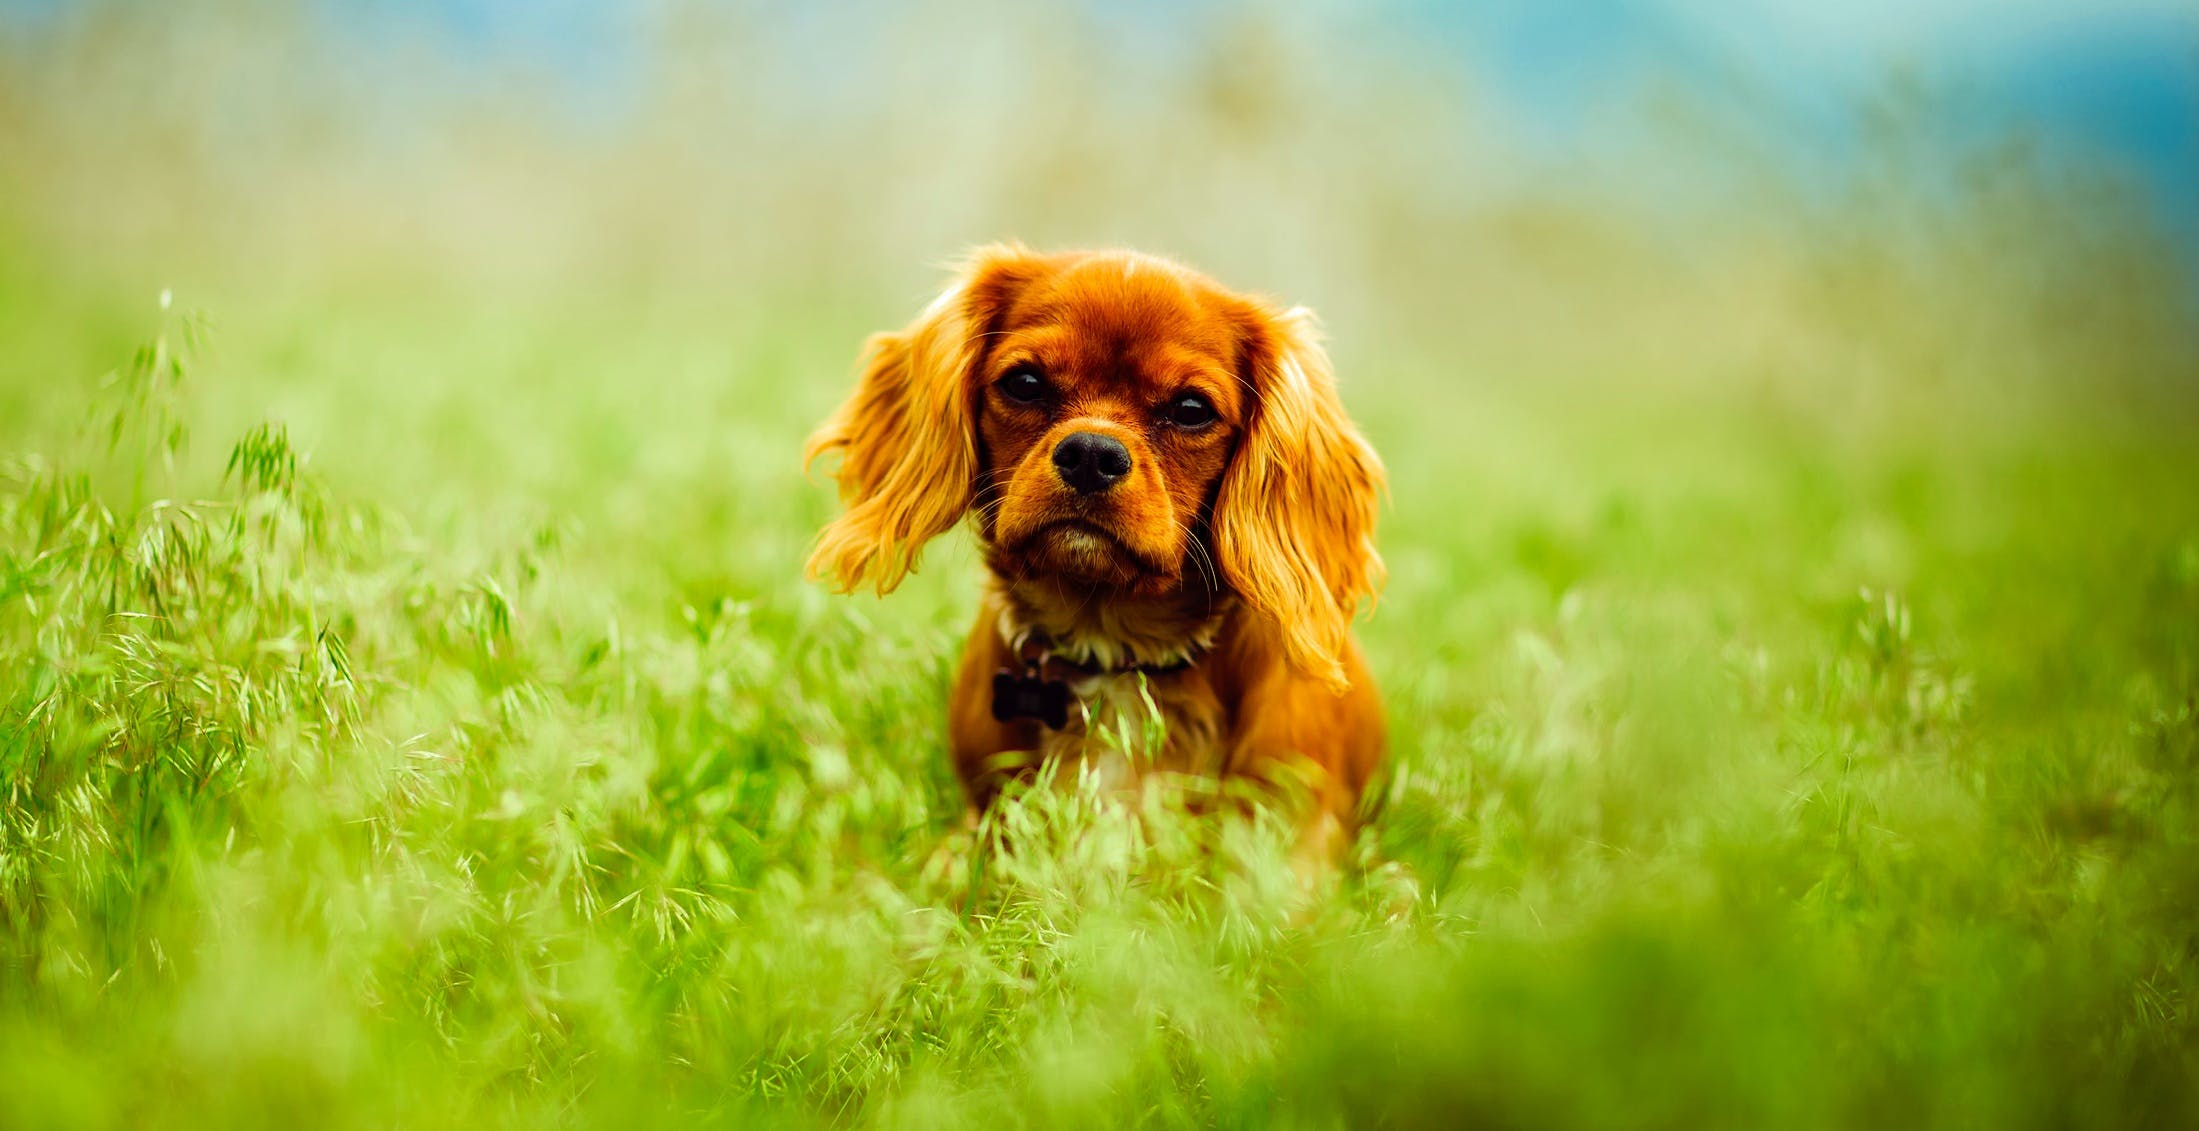 Dog on Grass